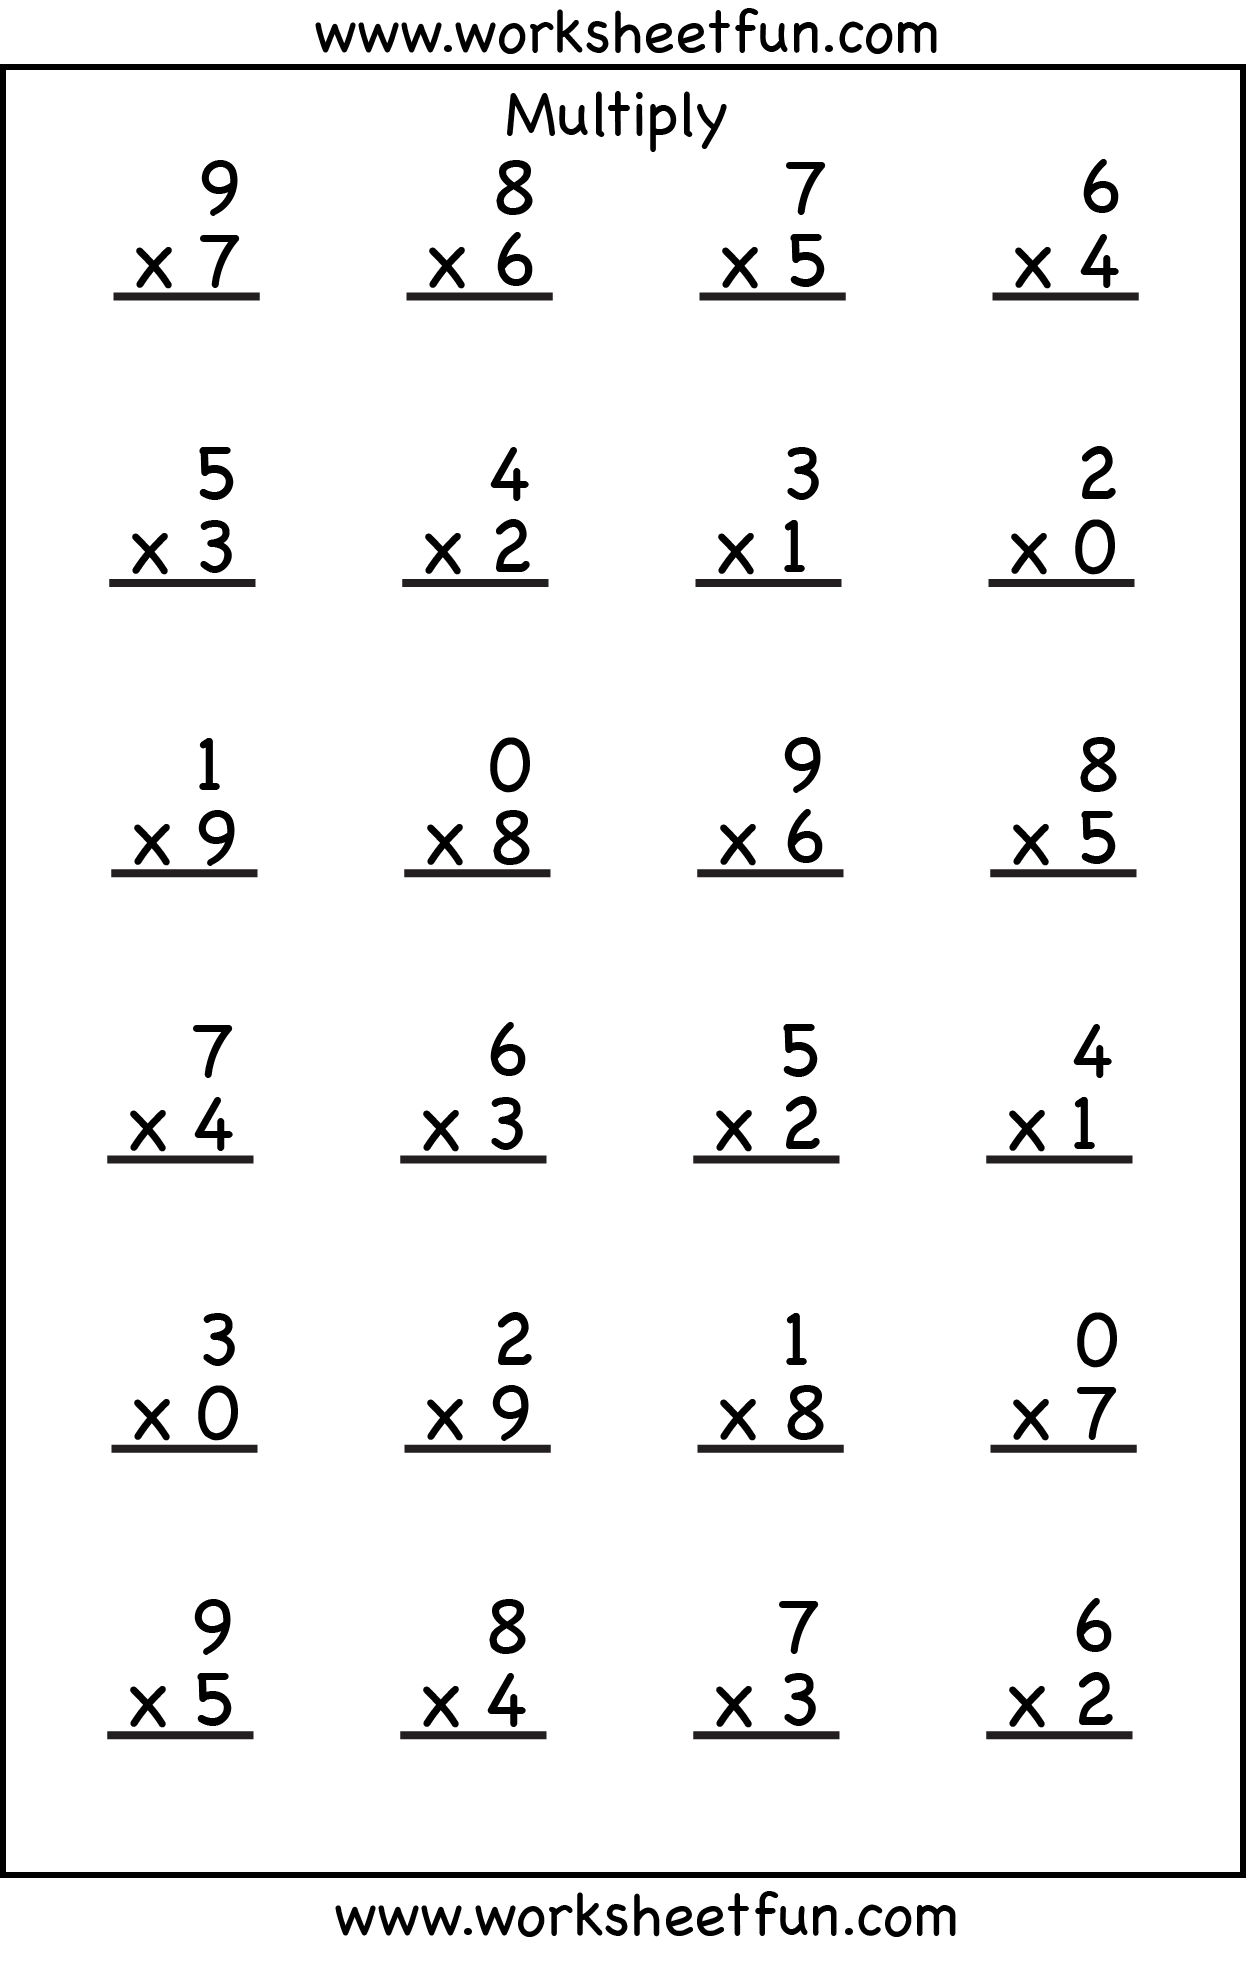 Multiplication Worksheets Grade 3 Free Printable Scalien – Division and Multiplication Worksheets for Grade 3